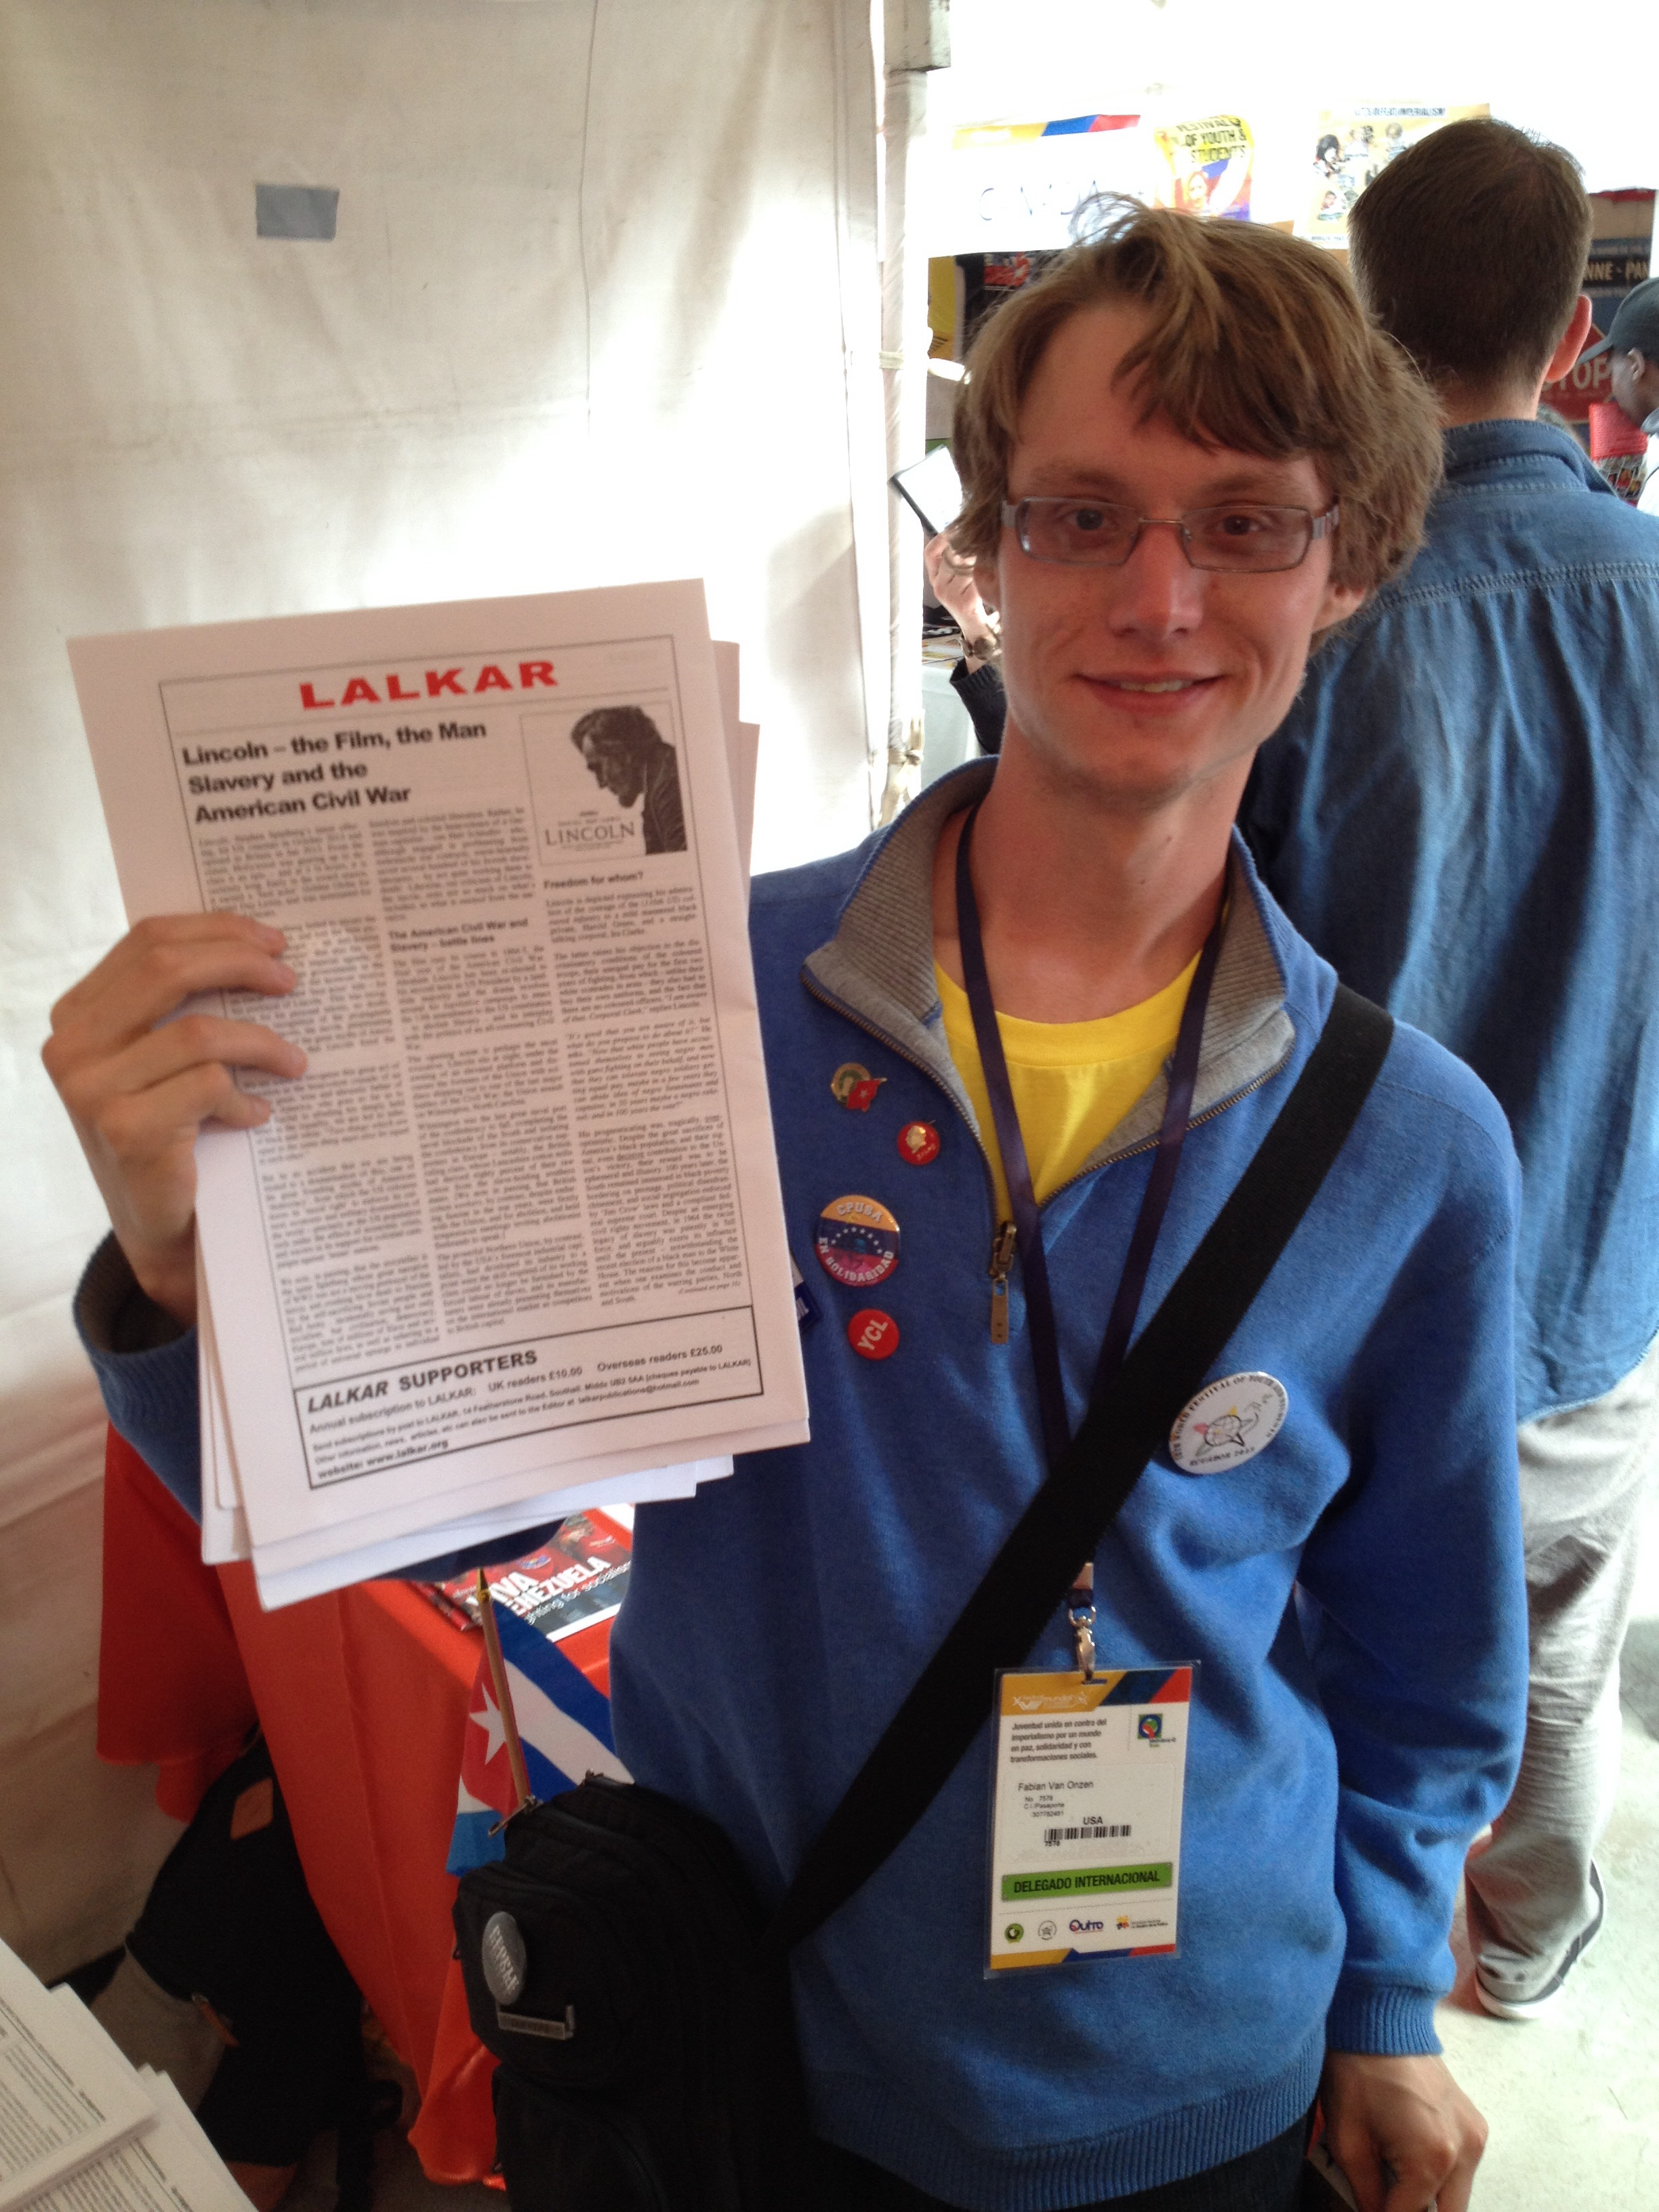 YCL comrade and Lalkar subscriber from the USA